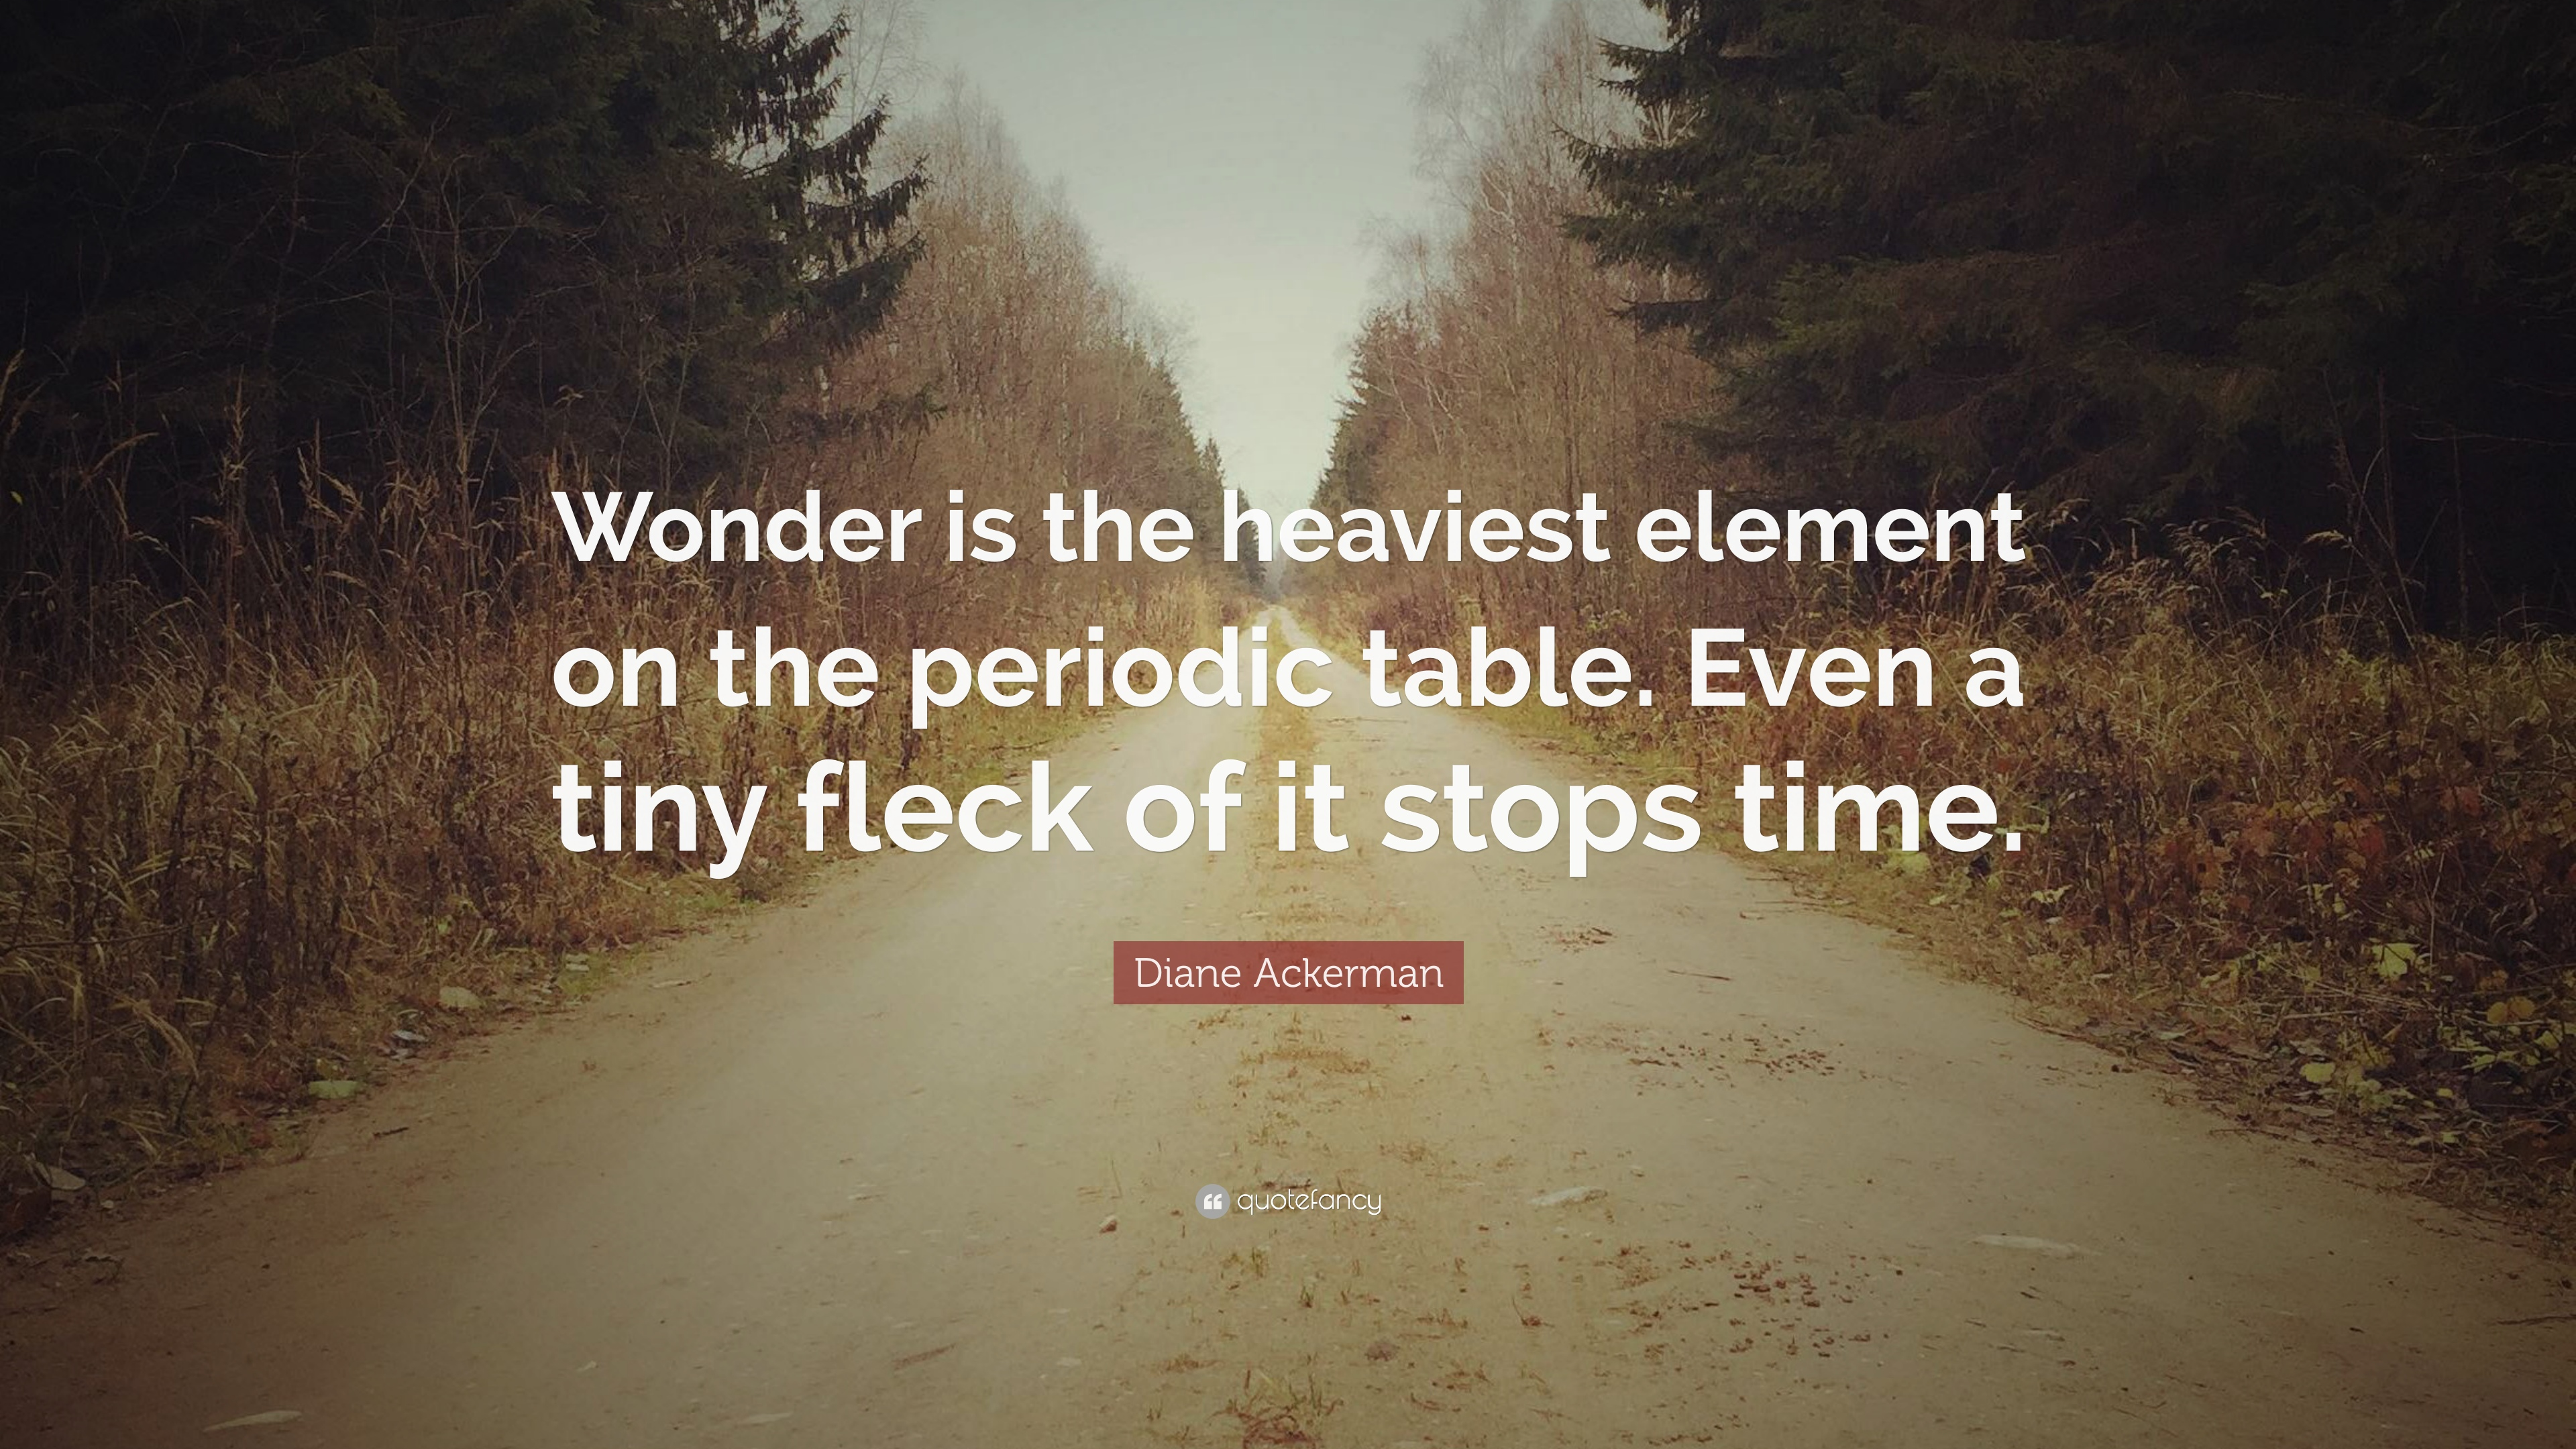 What is the heaviest element on the periodic table image diane ackerman quote wonder is the heaviest element on the diane ackerman quote wonder is the gamestrikefo Images